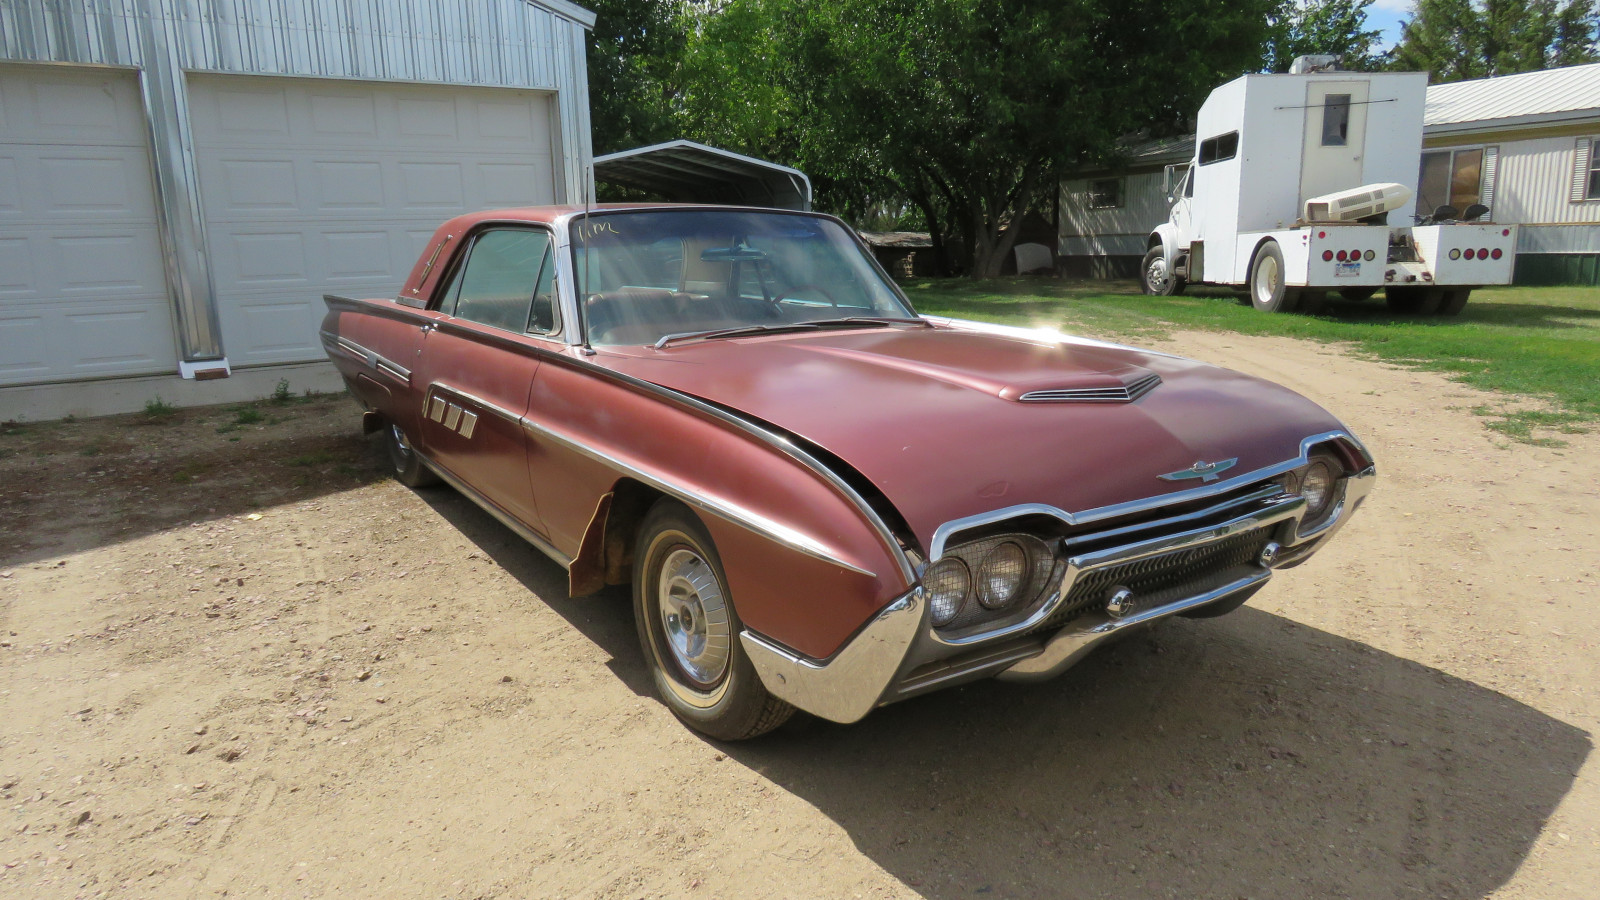 1963 Ford Thunderbird Coupe - Image 1